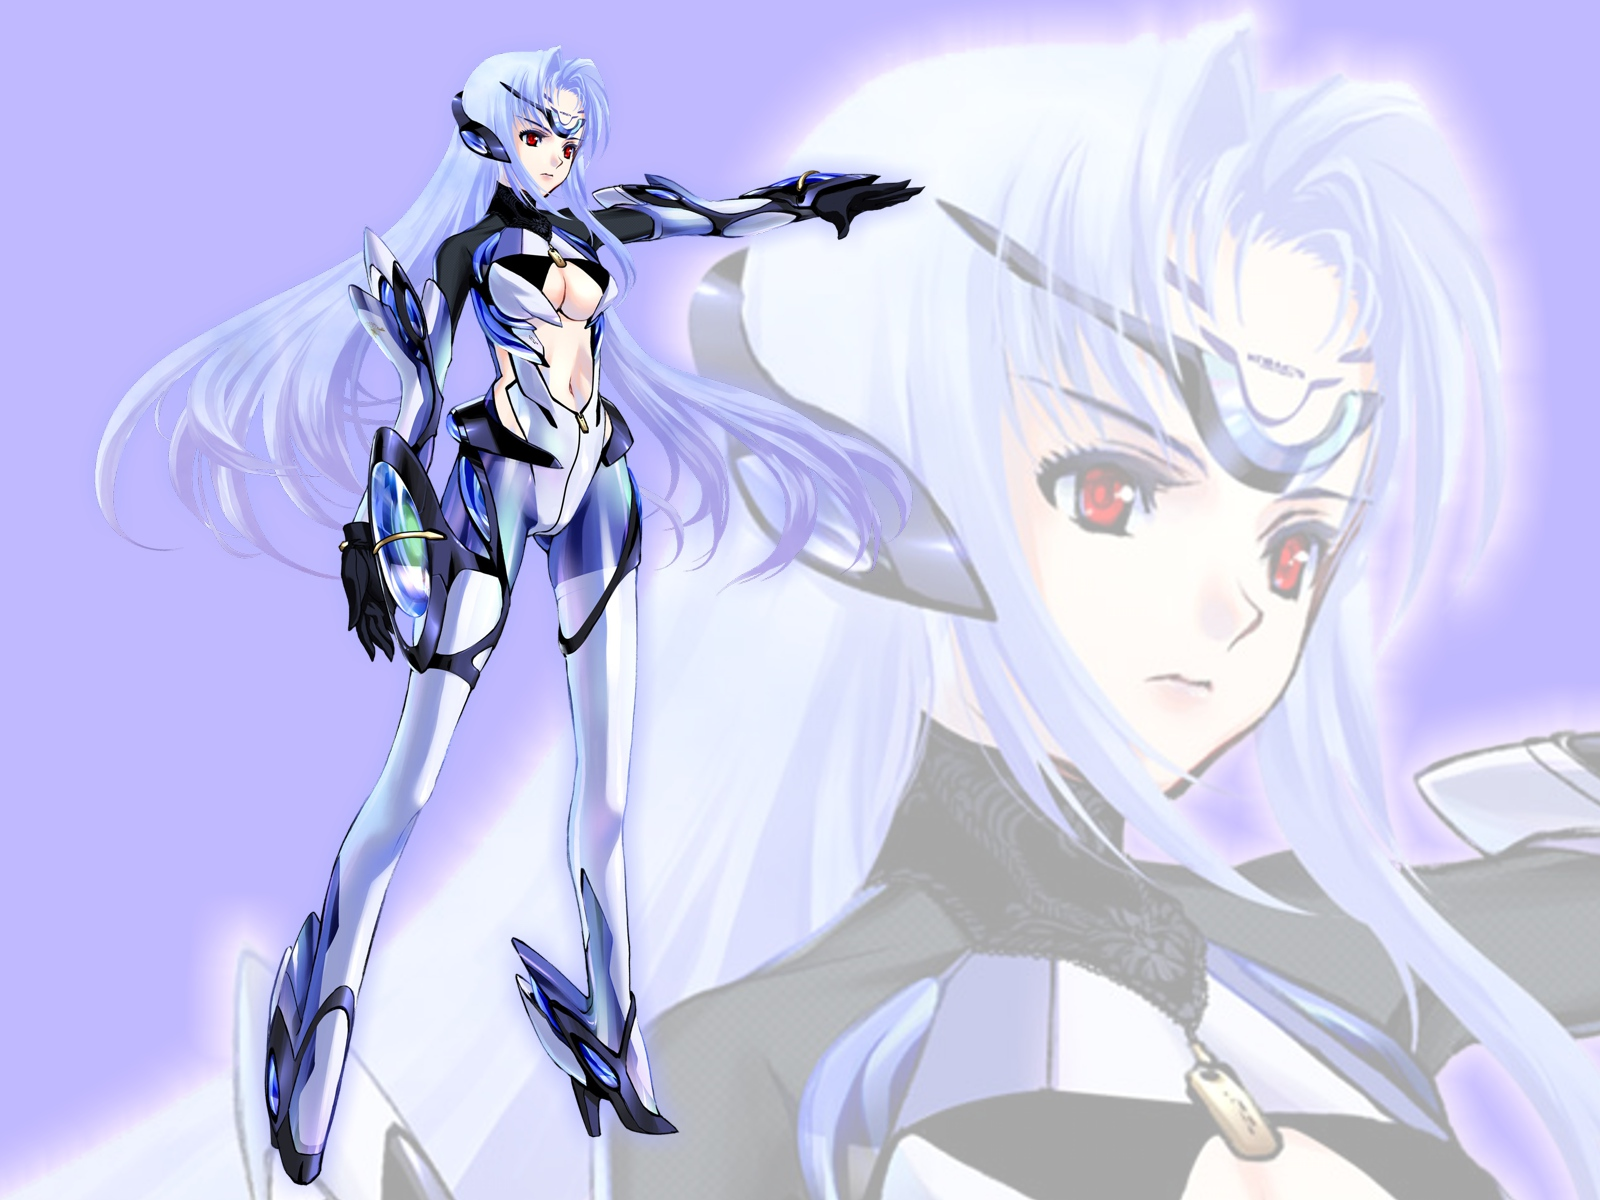 blue_hair kos-mos long_hair mechagirl red_eyes techgirl xenosaga zoom_layer